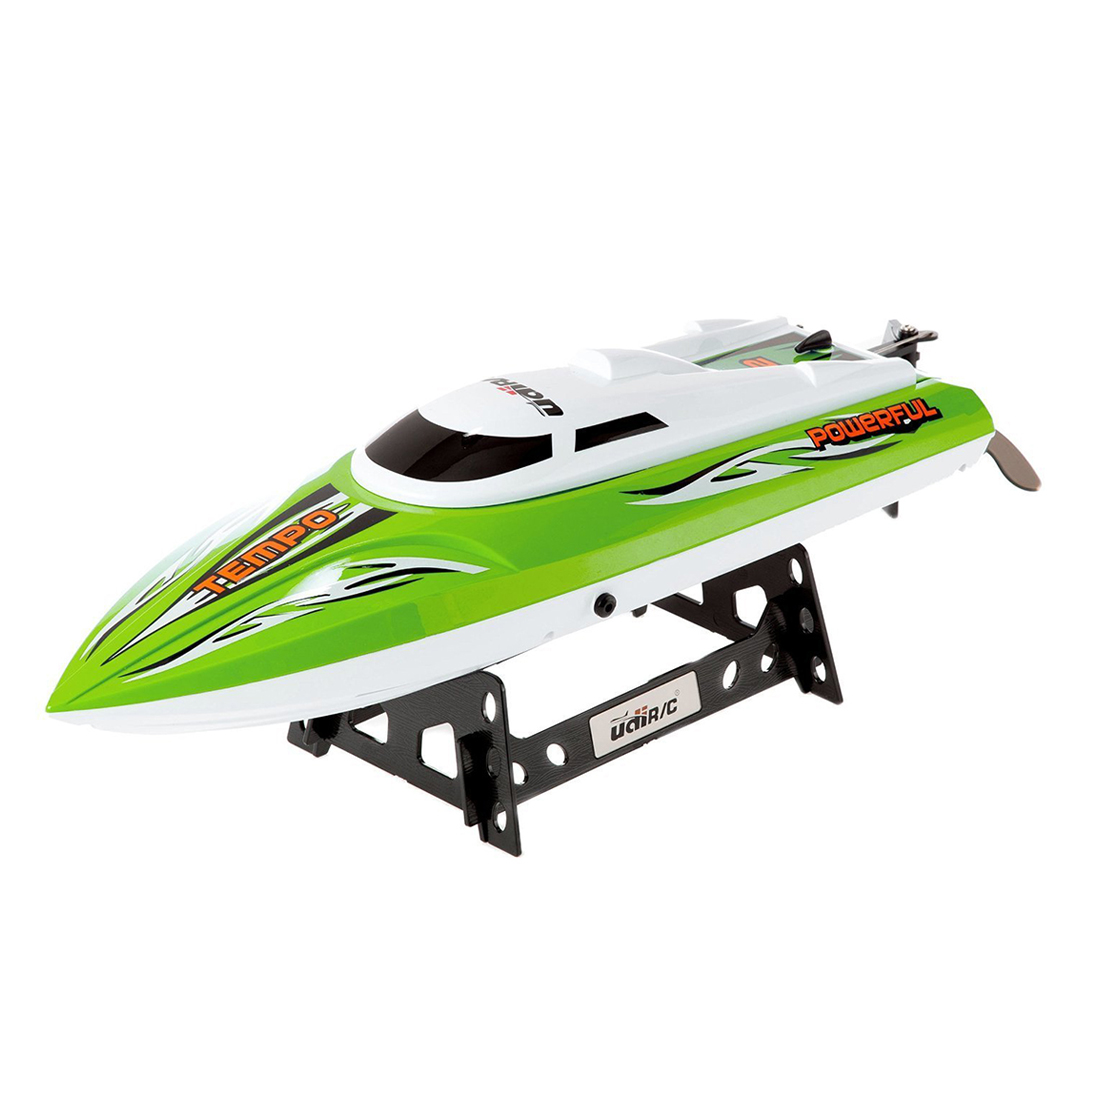 Udirc UDI002 Tempo Remote Control Boat for Pools, Lakes and Outdoor Adventure - 2.4GHz High Speed Electric RC Green 3 speed change remote and manual control 60 90 120 secs circle 60x10cm electric turntable display stand rotary model show